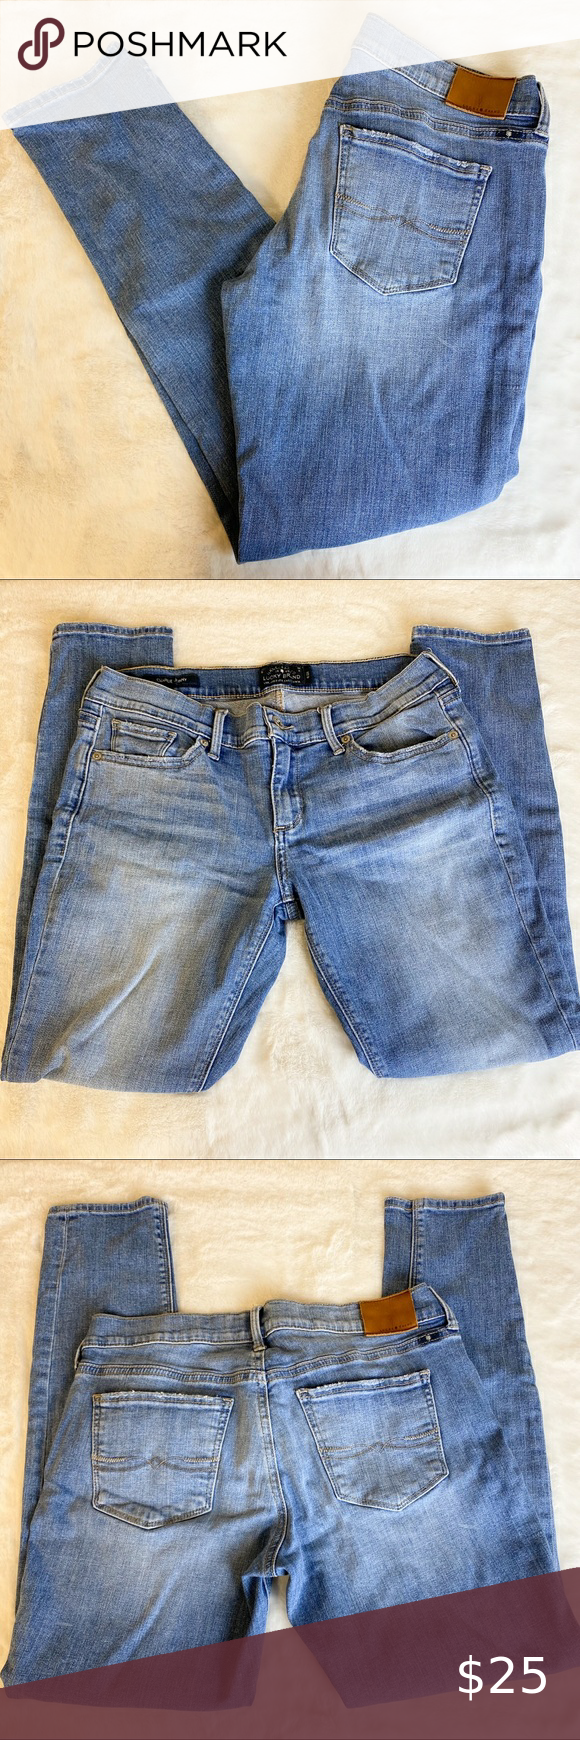 """Lucky Brand Charlie Skinny Jeans Size 6 / 28 Lucky Brand Charlie Skinny Jeans Size 6 / 28  Measurements are approximate Waist 30"""" Inseam 26"""" Rise 8""""  #0125 Lucky Brand Jeans Skinny"""